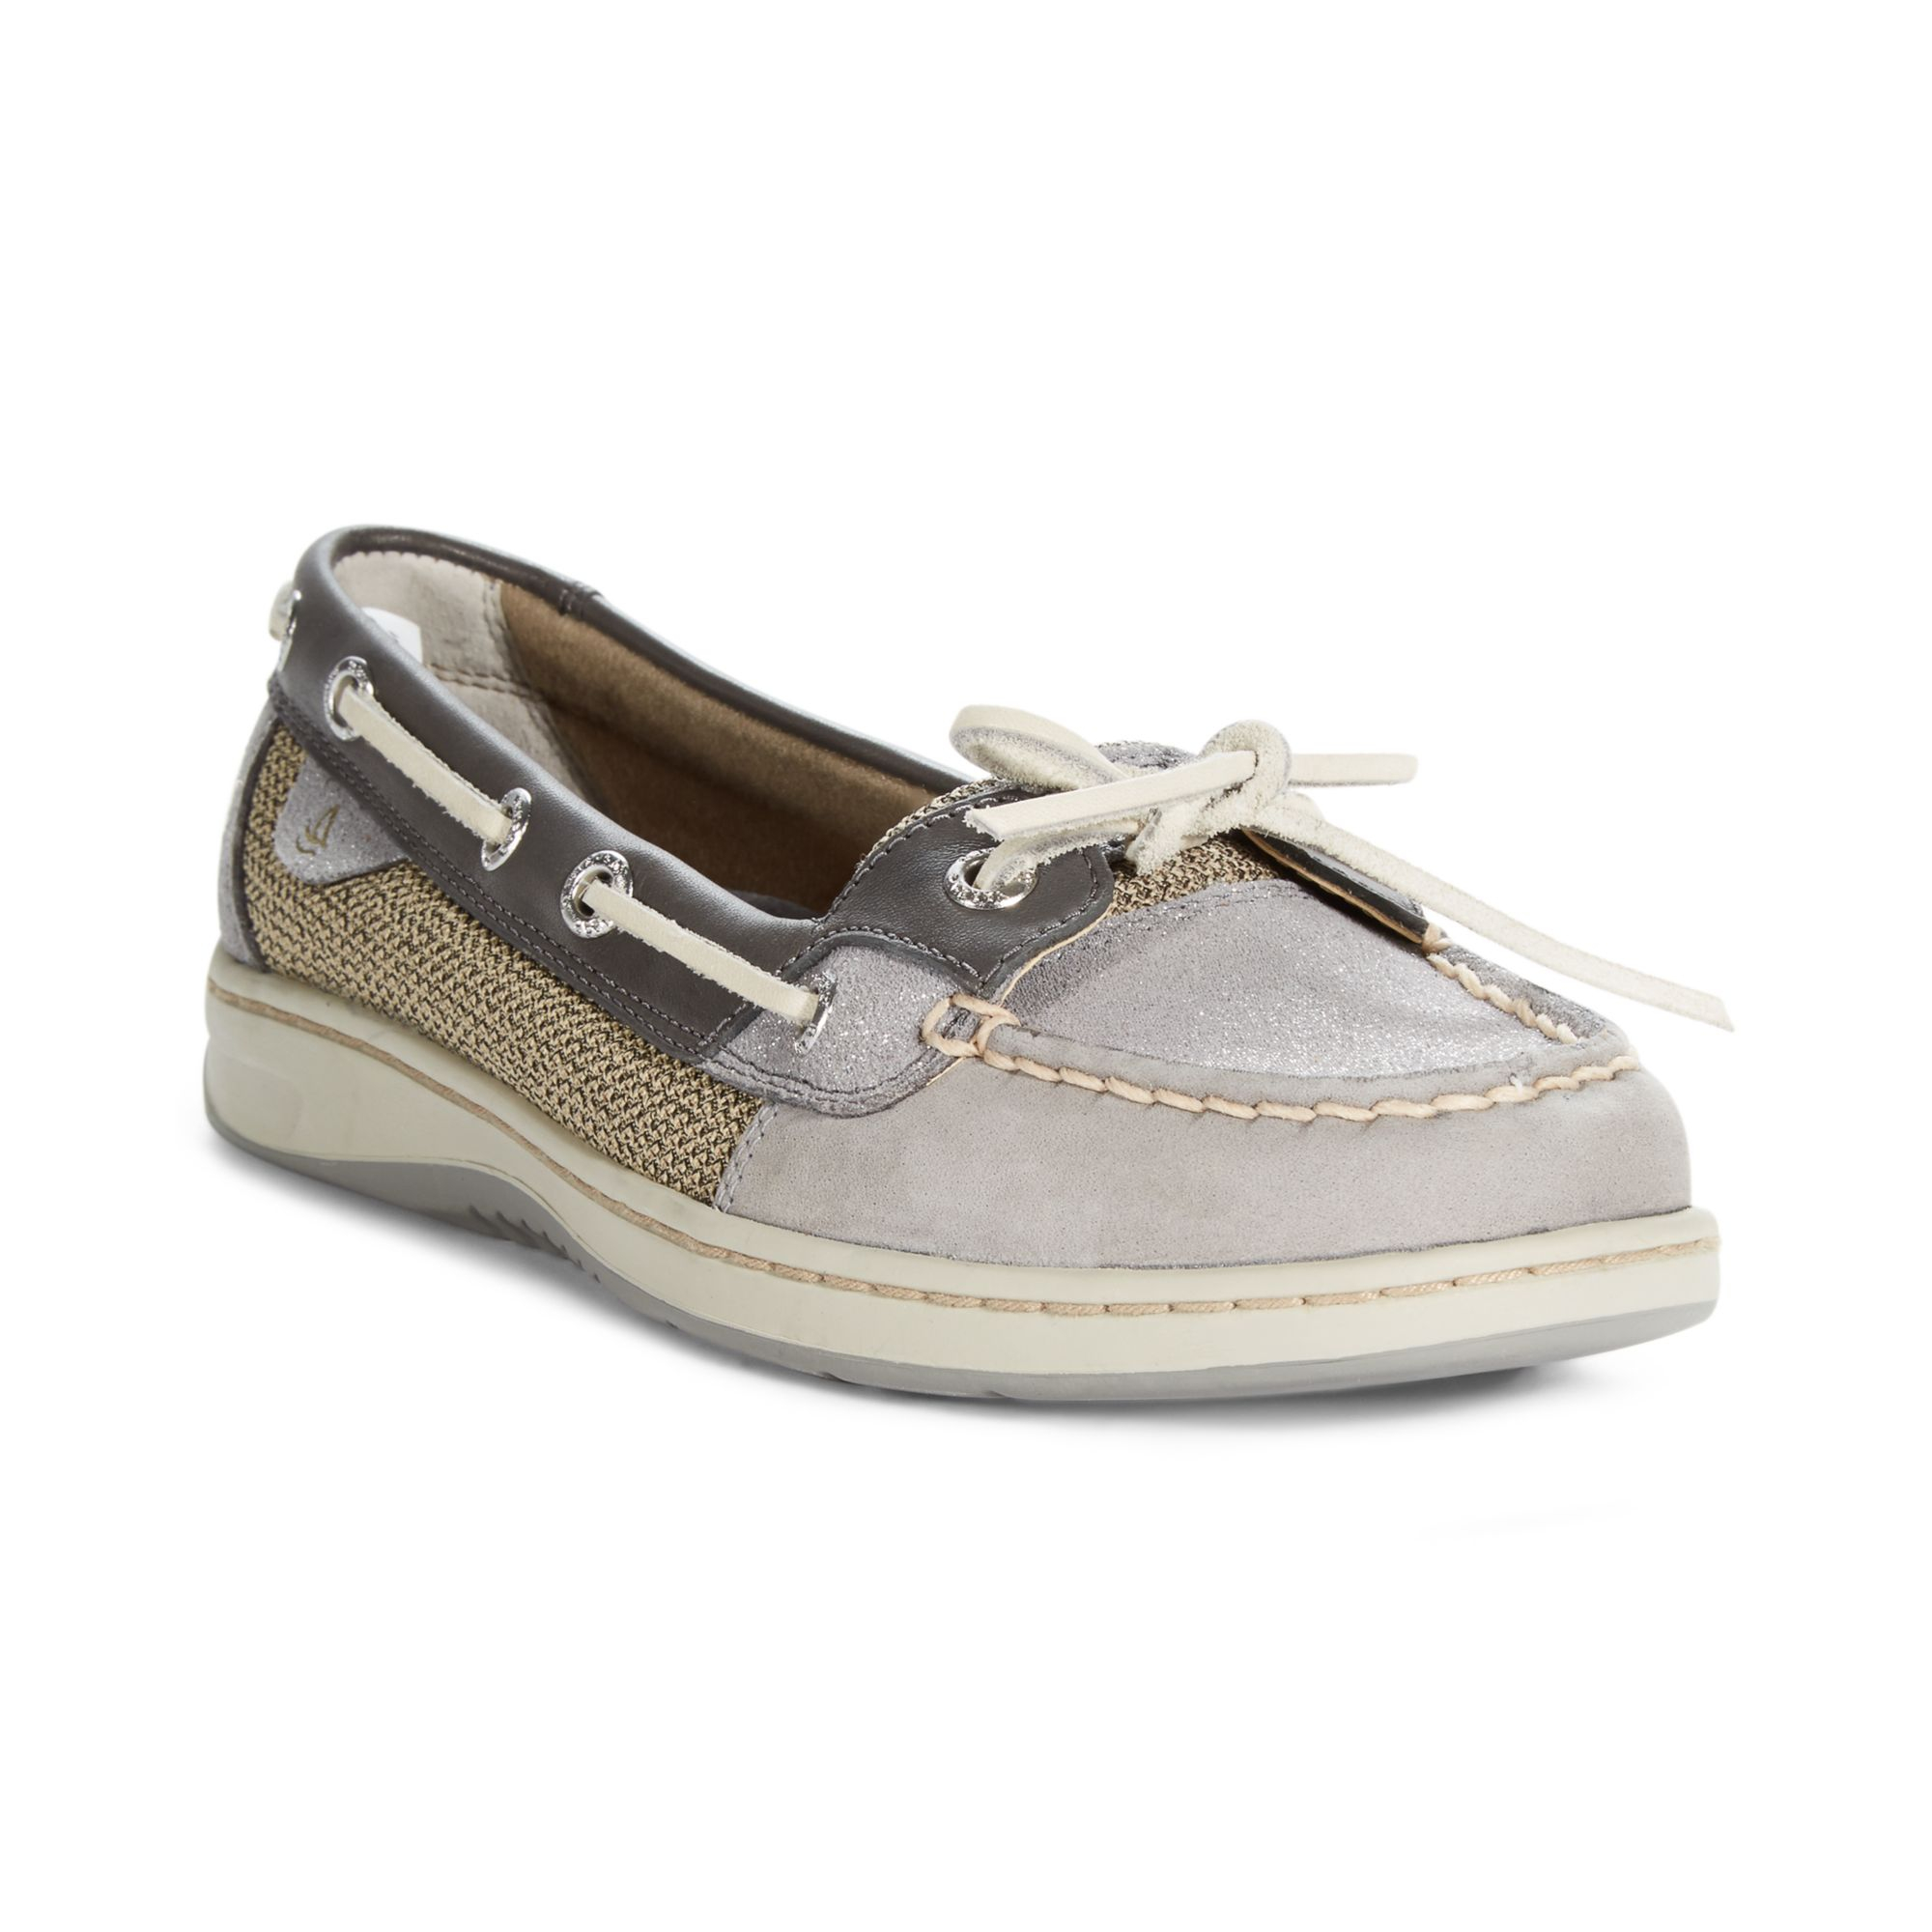 Sperry Womens Shoes Australia